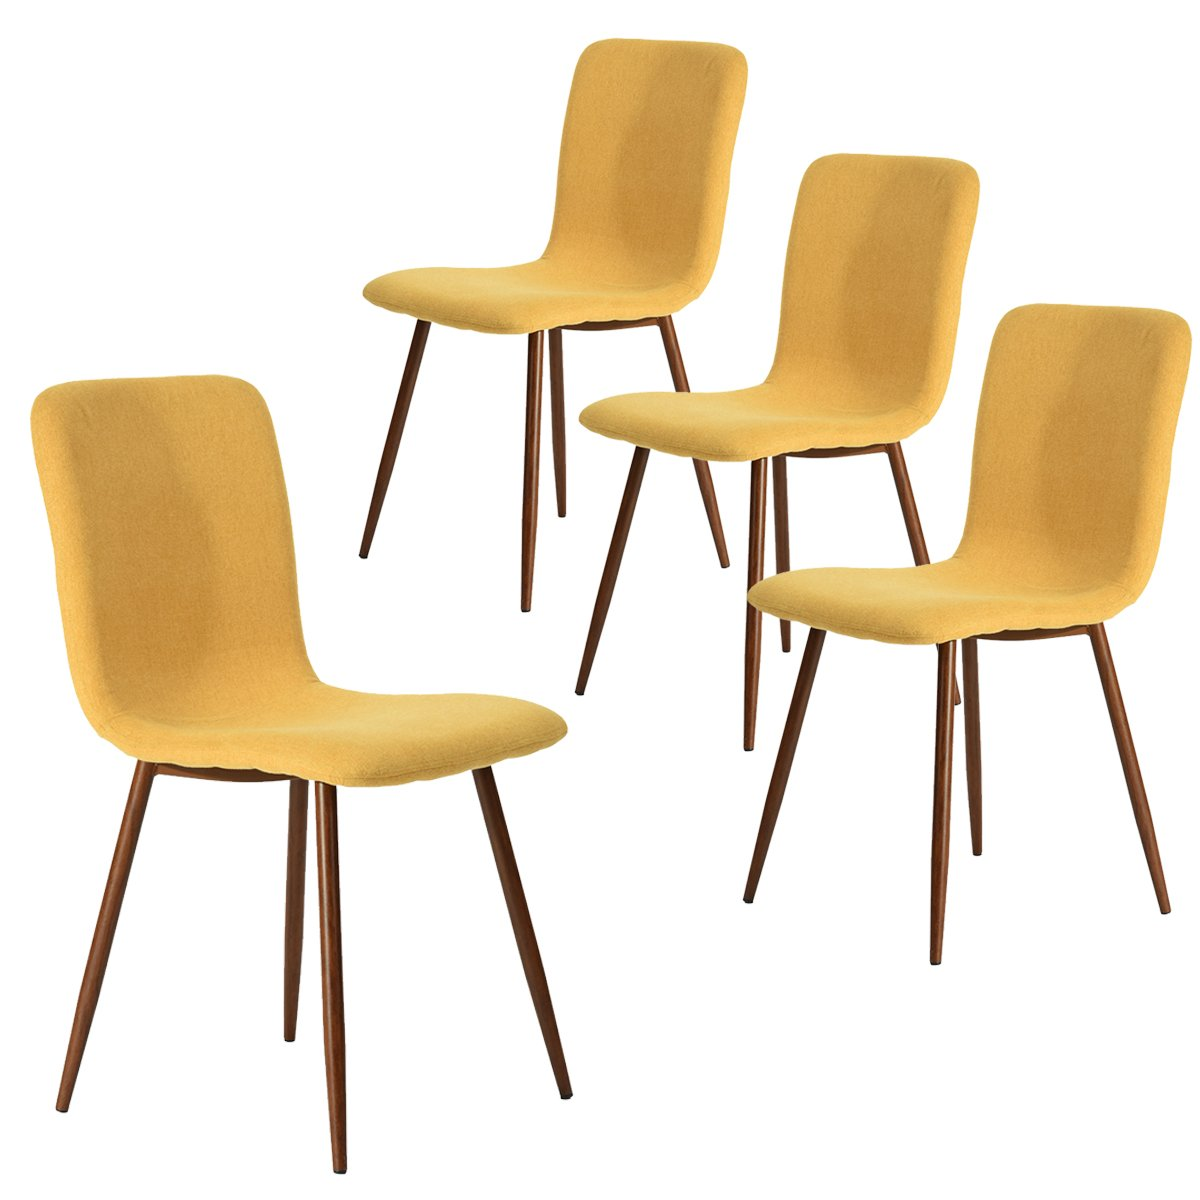 Coavas Set of 4 Dining Chairs Fabric Cushion Kitchen Side Chairs with Sturdy Metal Legs for Dining Room, Yellow by Coavas